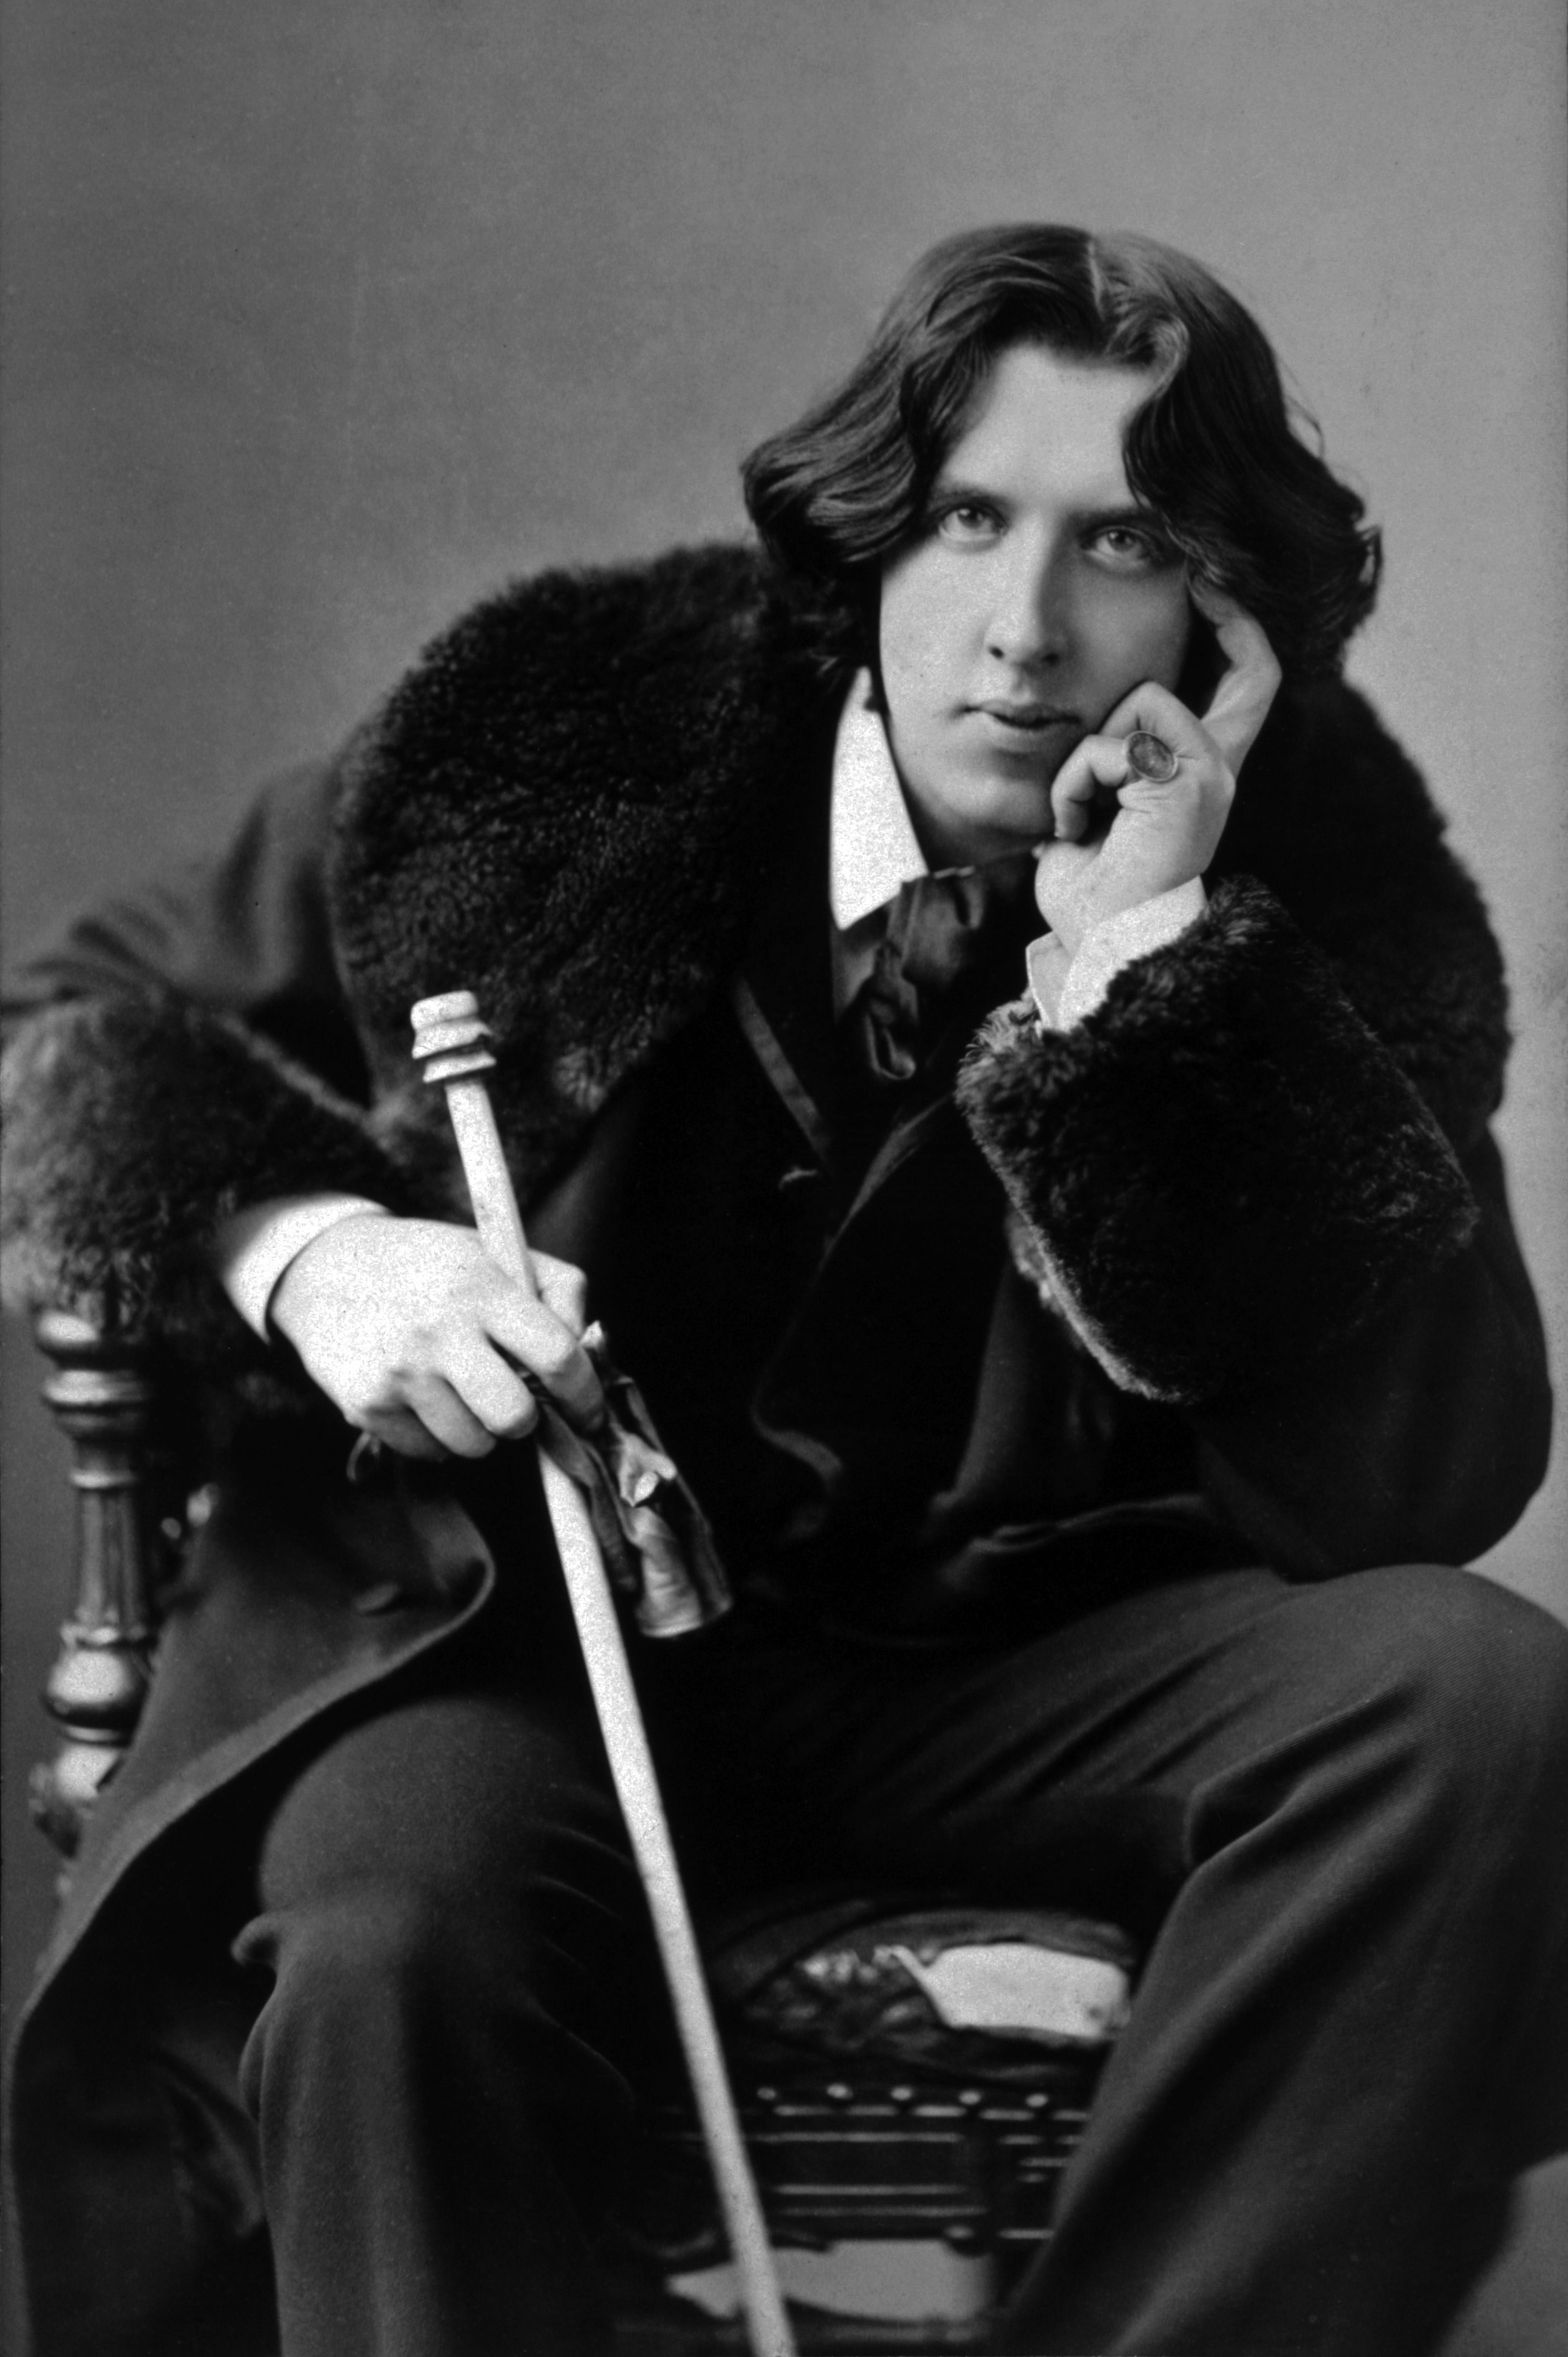 oscar wilde literawiki fandom powered by wikia retrato de oscar wilde